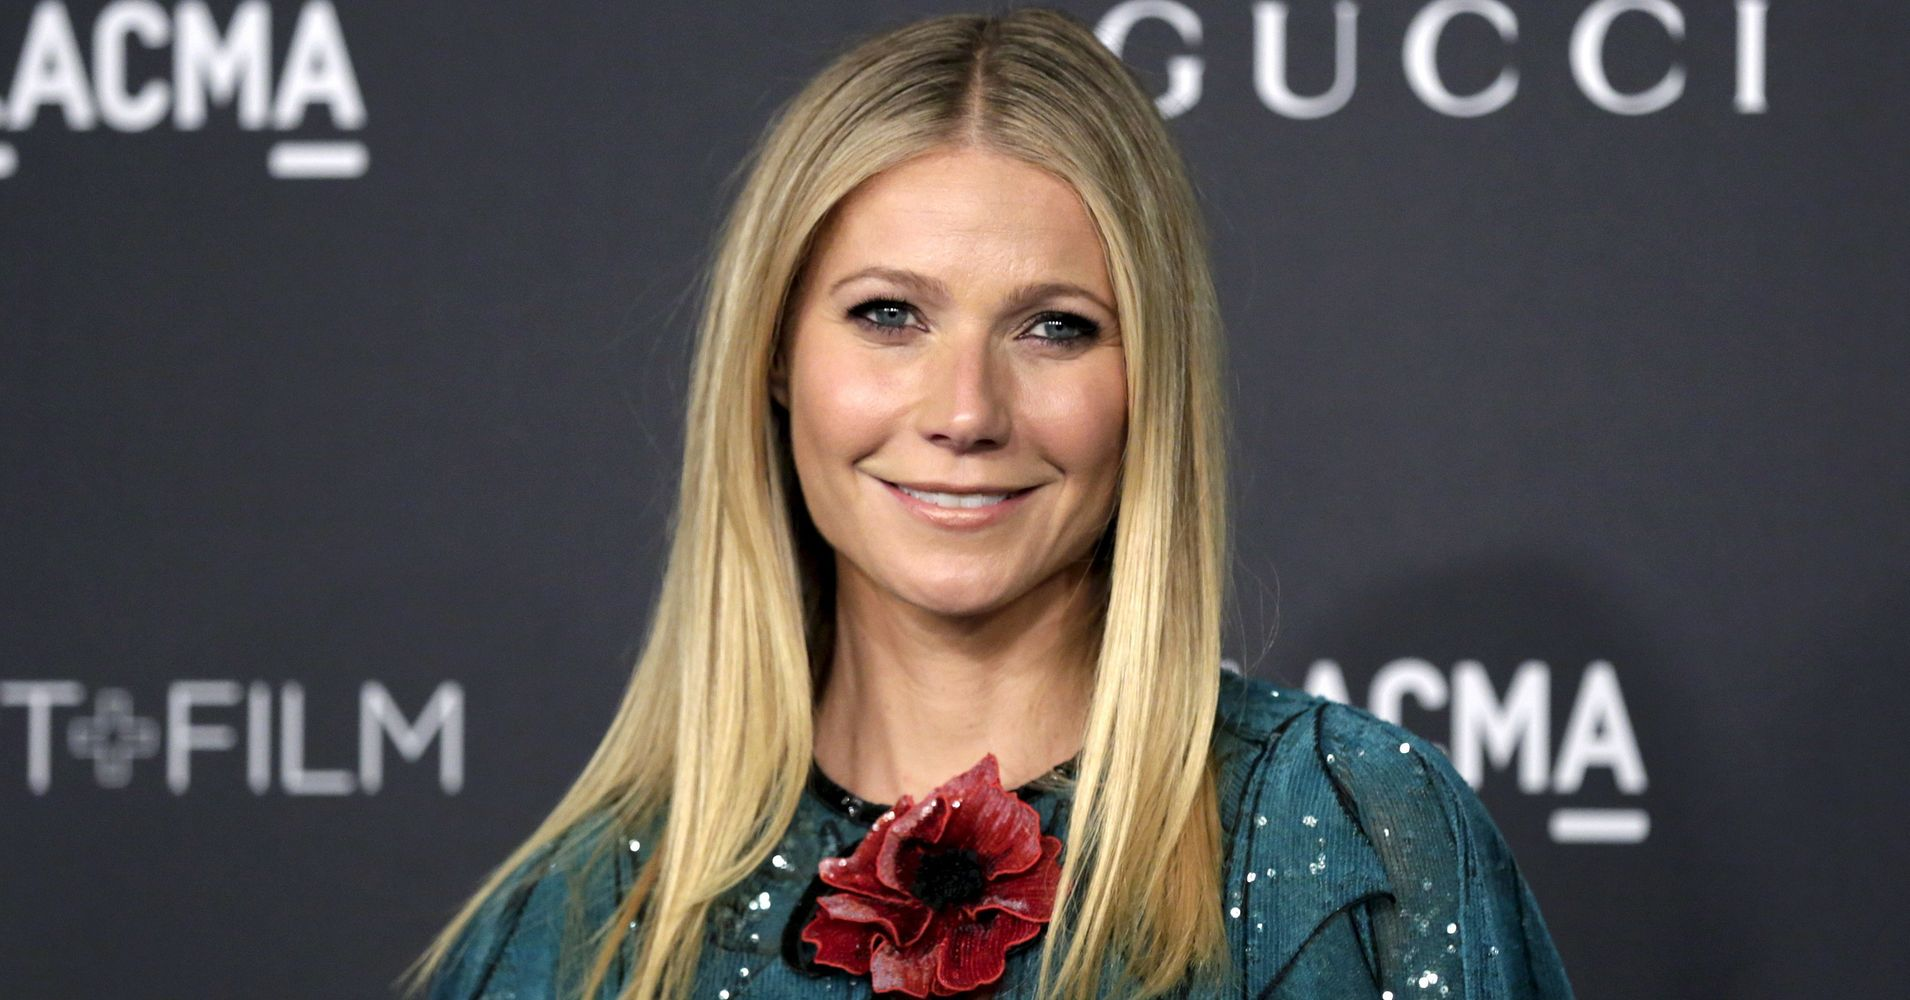 gwyneth paltrow wants you to buy the most outrageous items